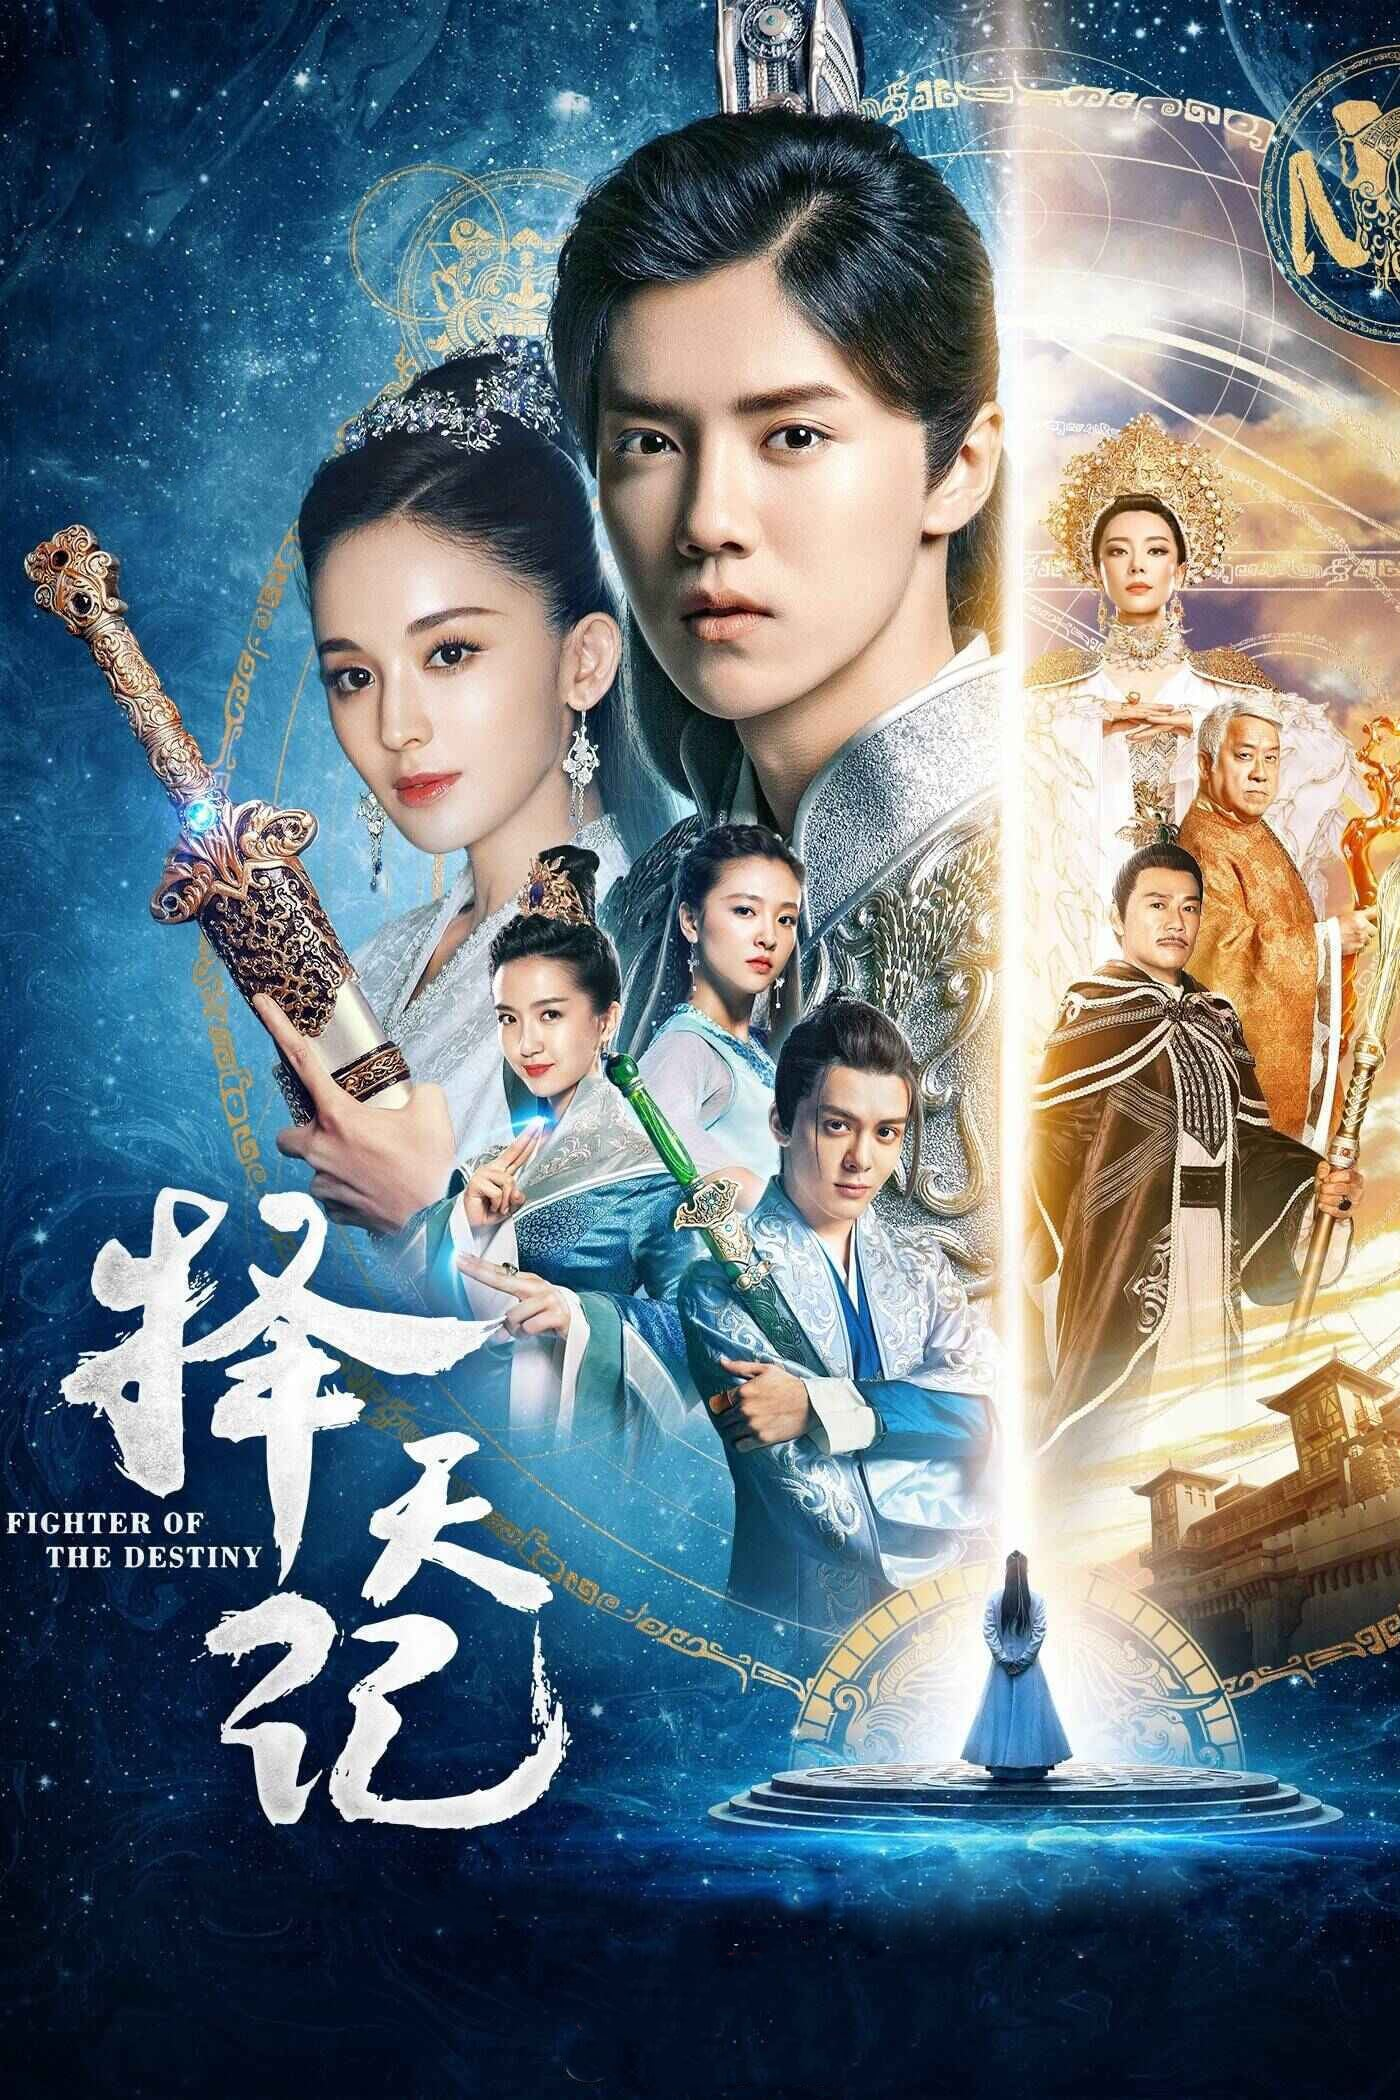 Fighter of the Destiny (2017)